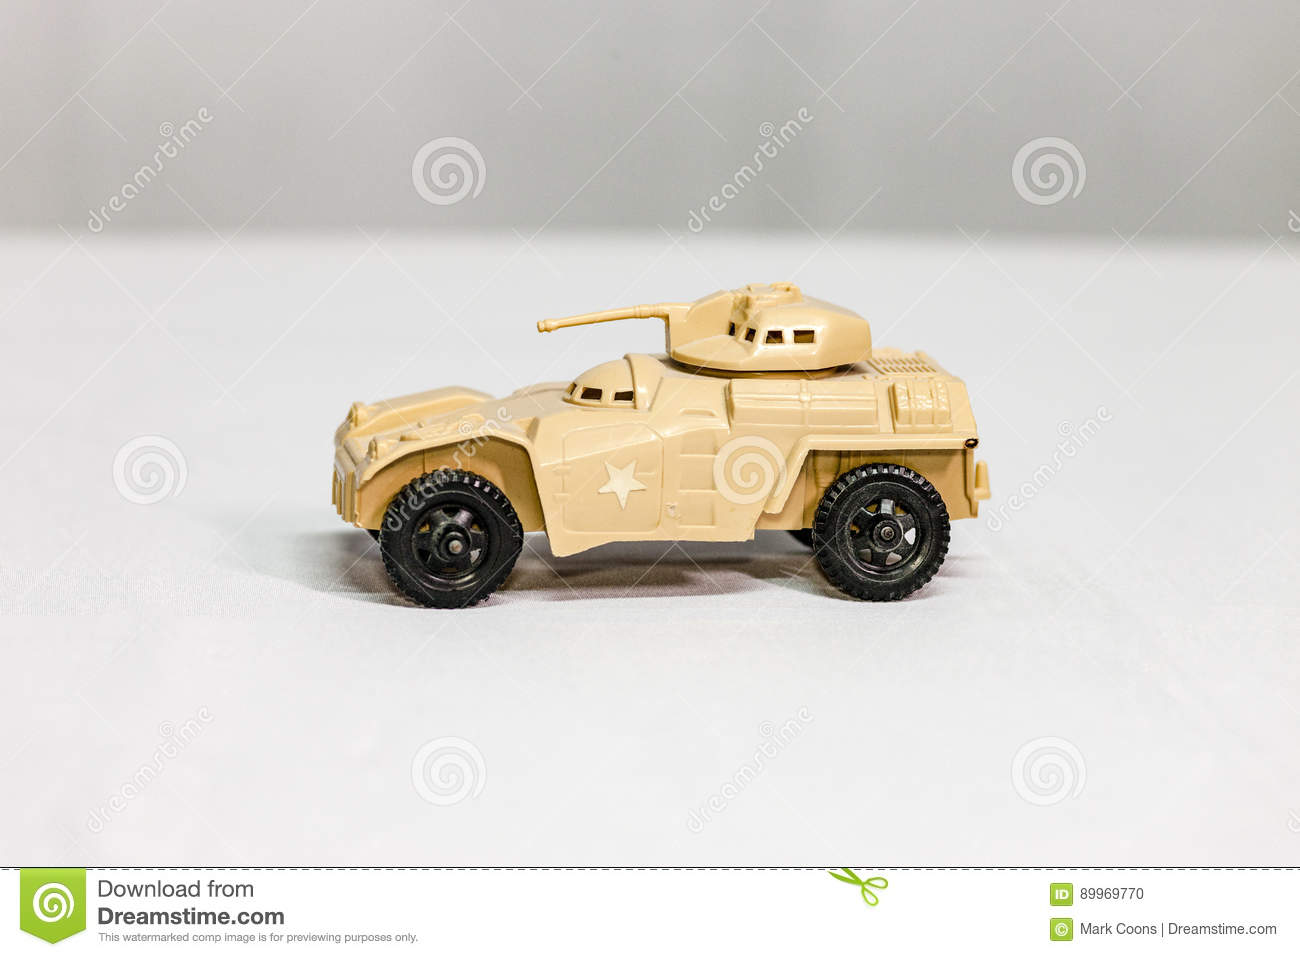 Toy desert tan Armored Personnel Carrier